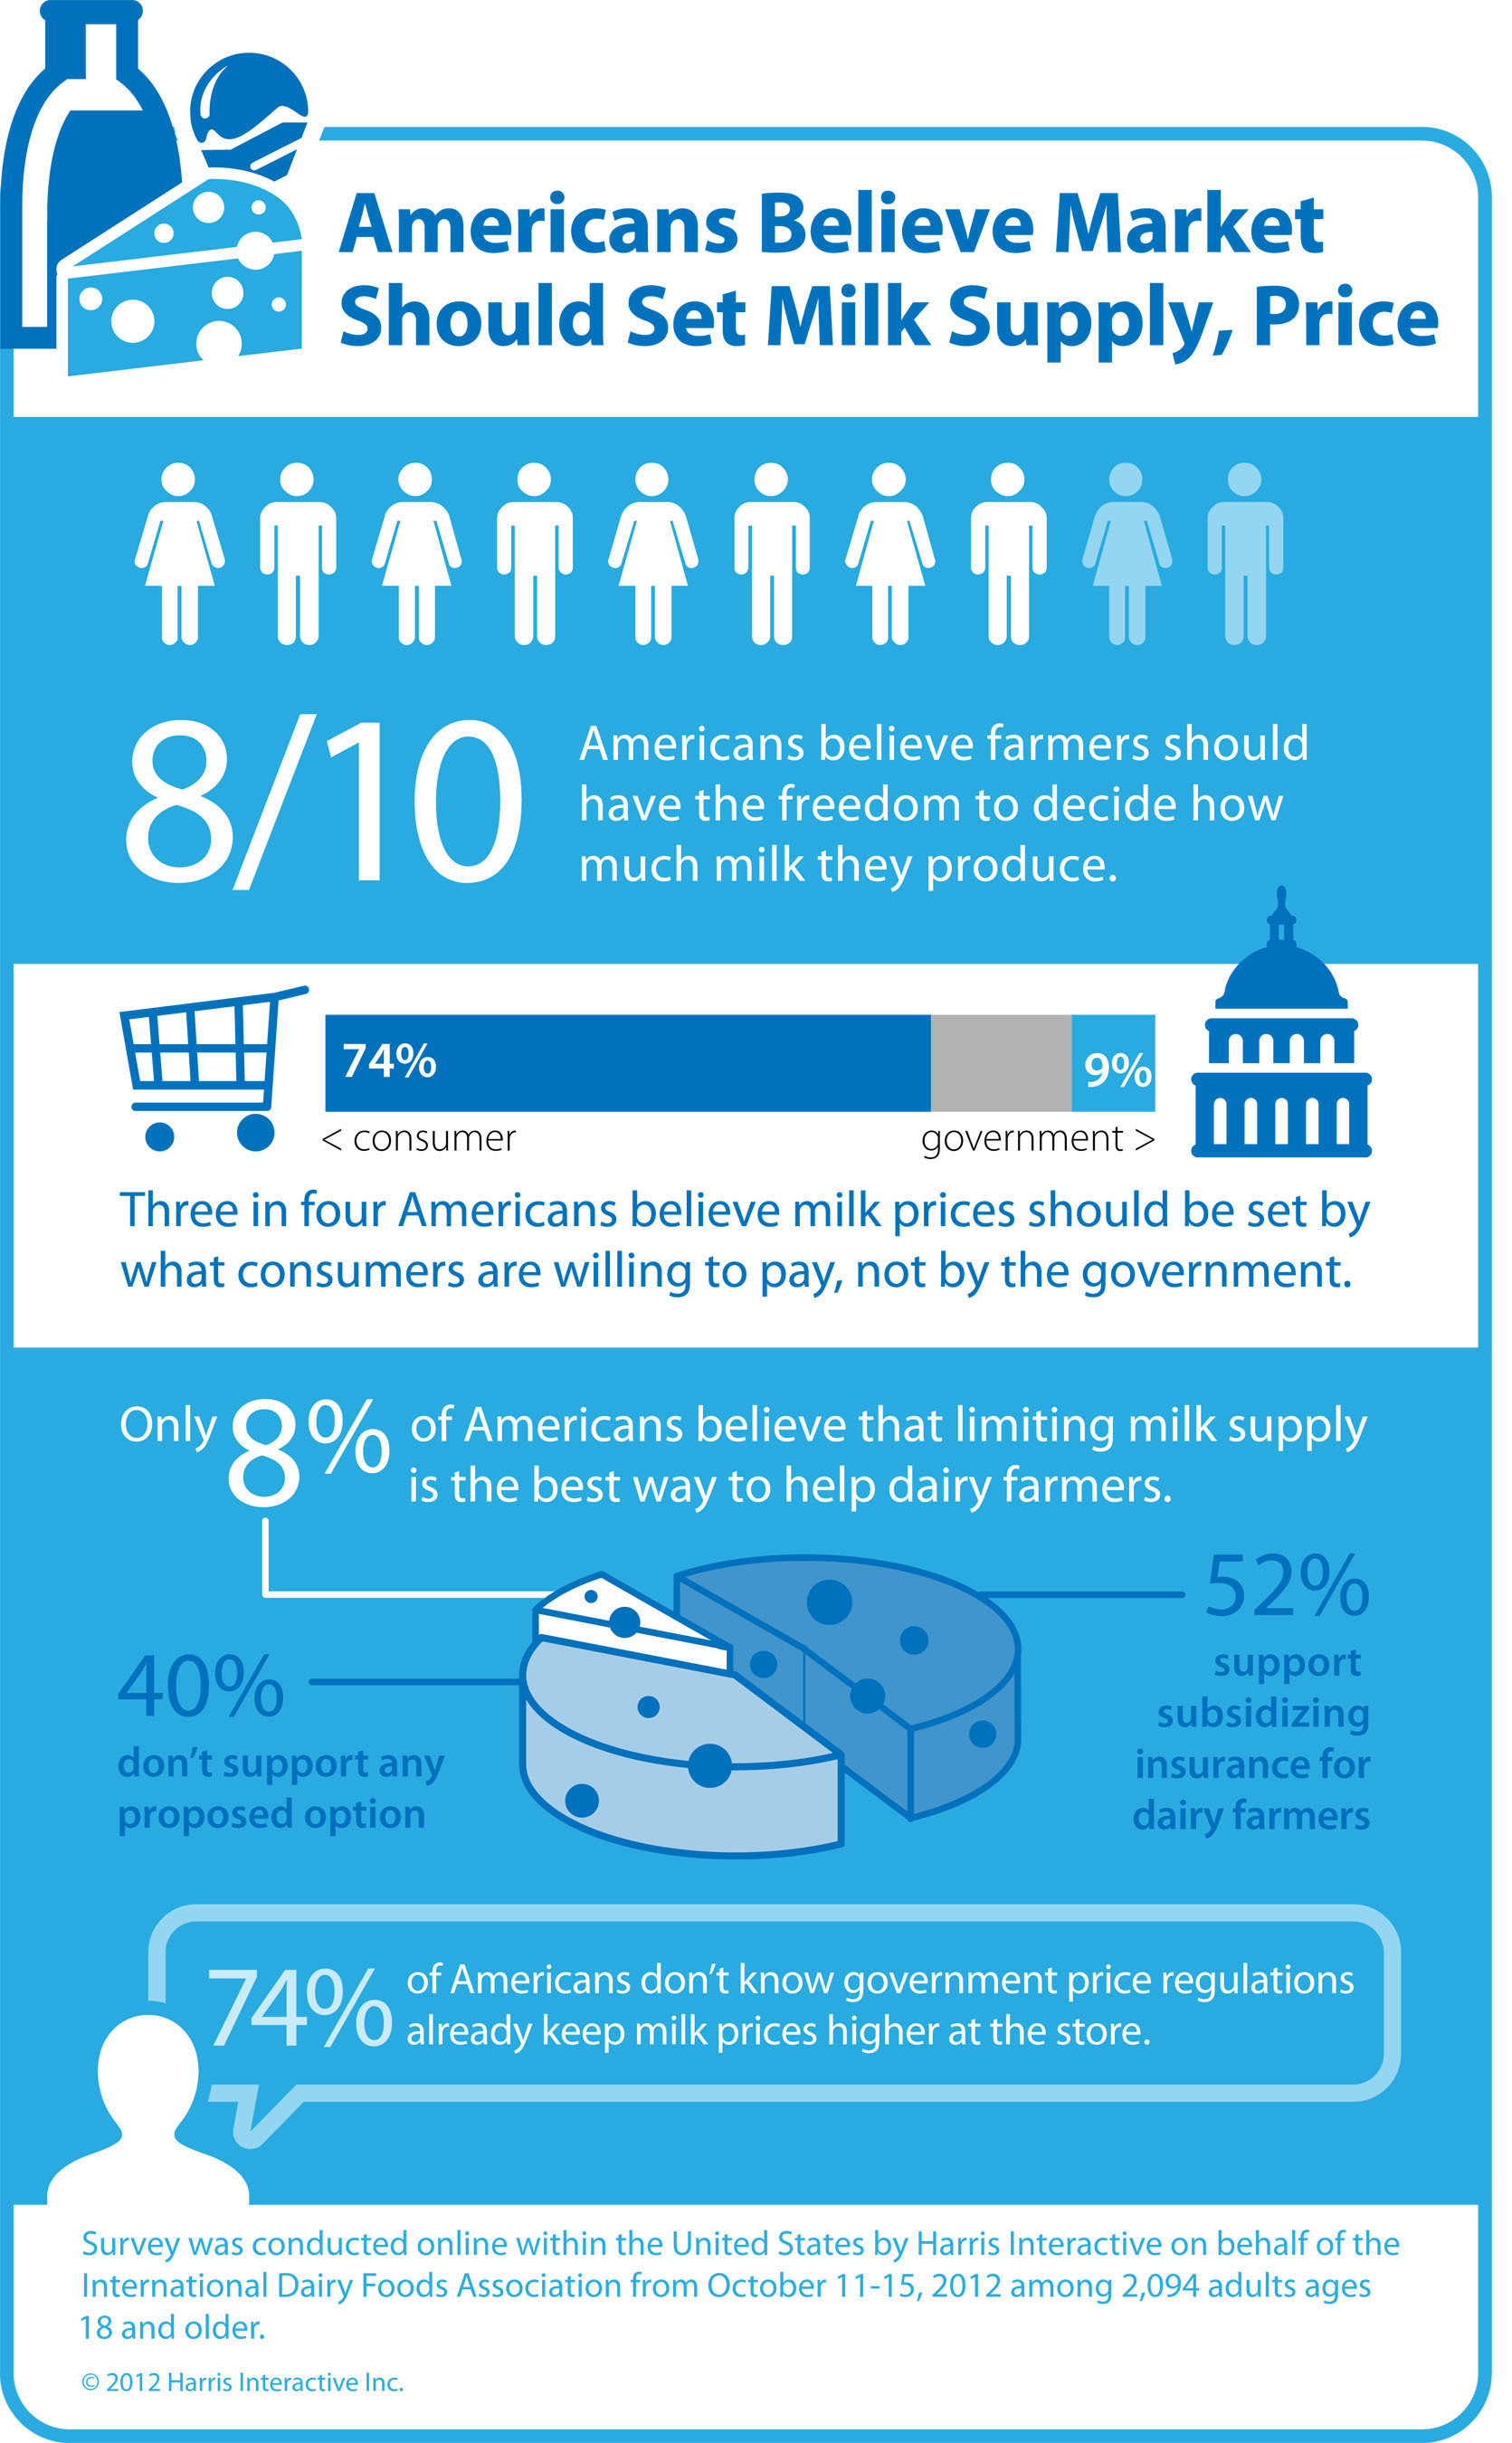 Americans Opposed to Government Limits on Milk Production